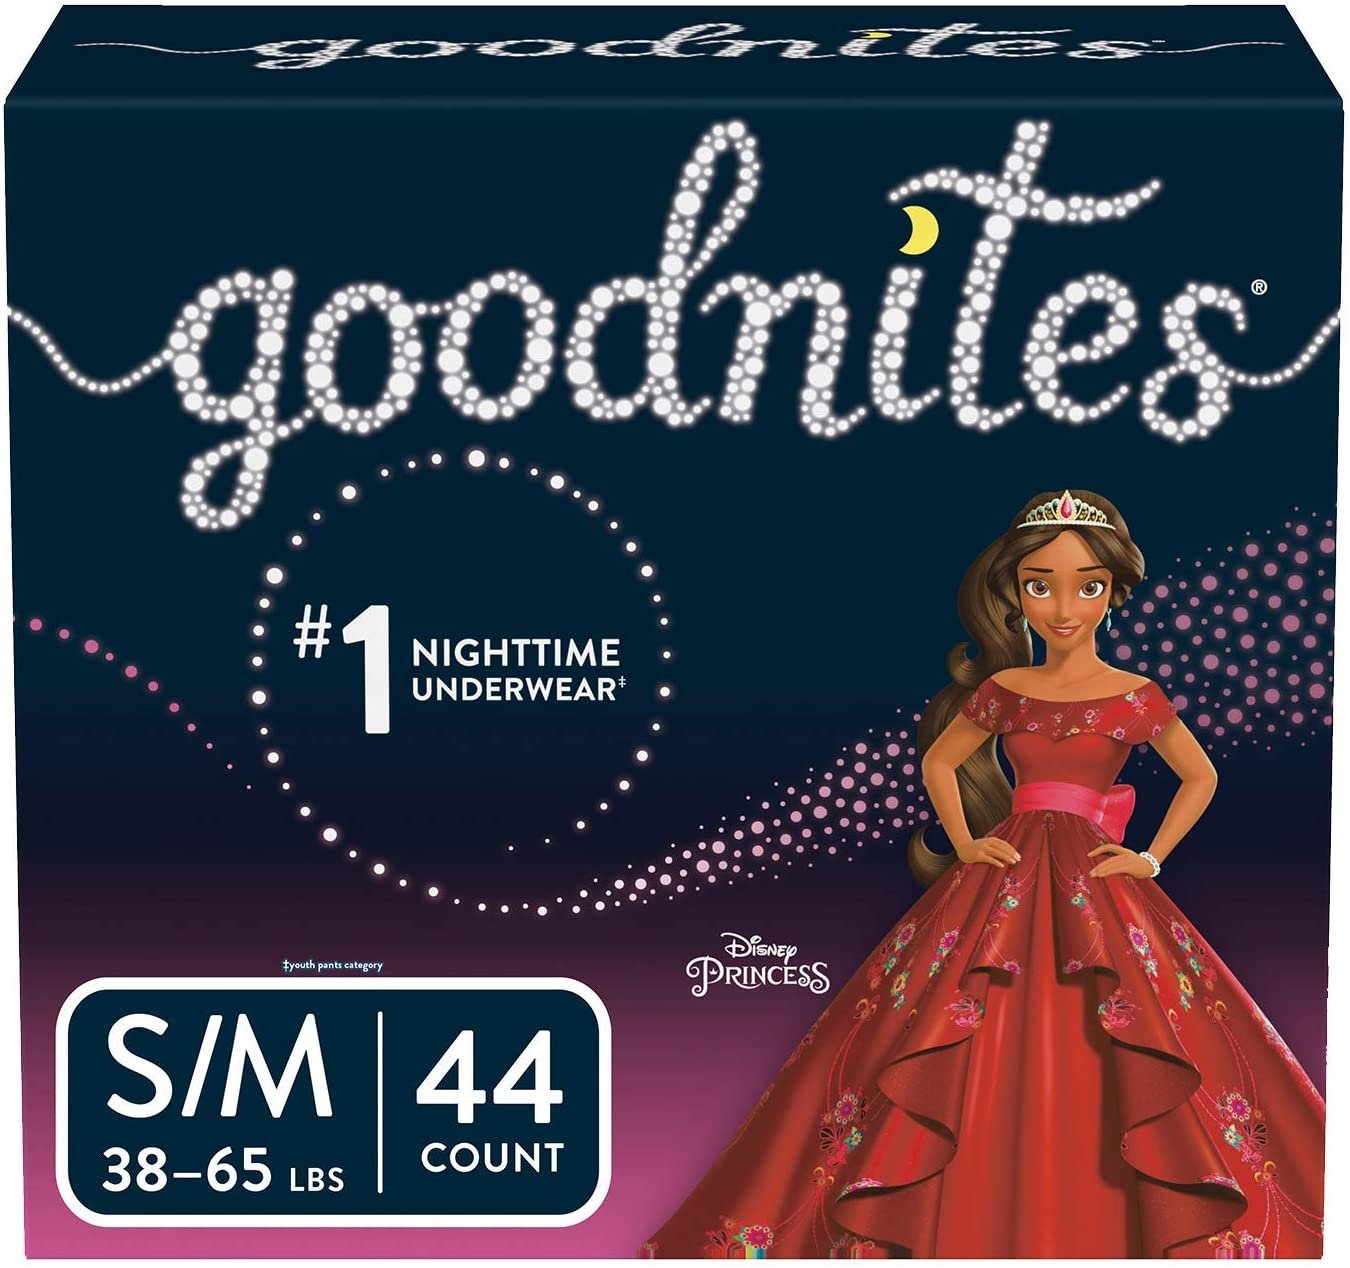 GOODNITES Bedtime Underwear for Girls, S/M 48 3865 lbs.